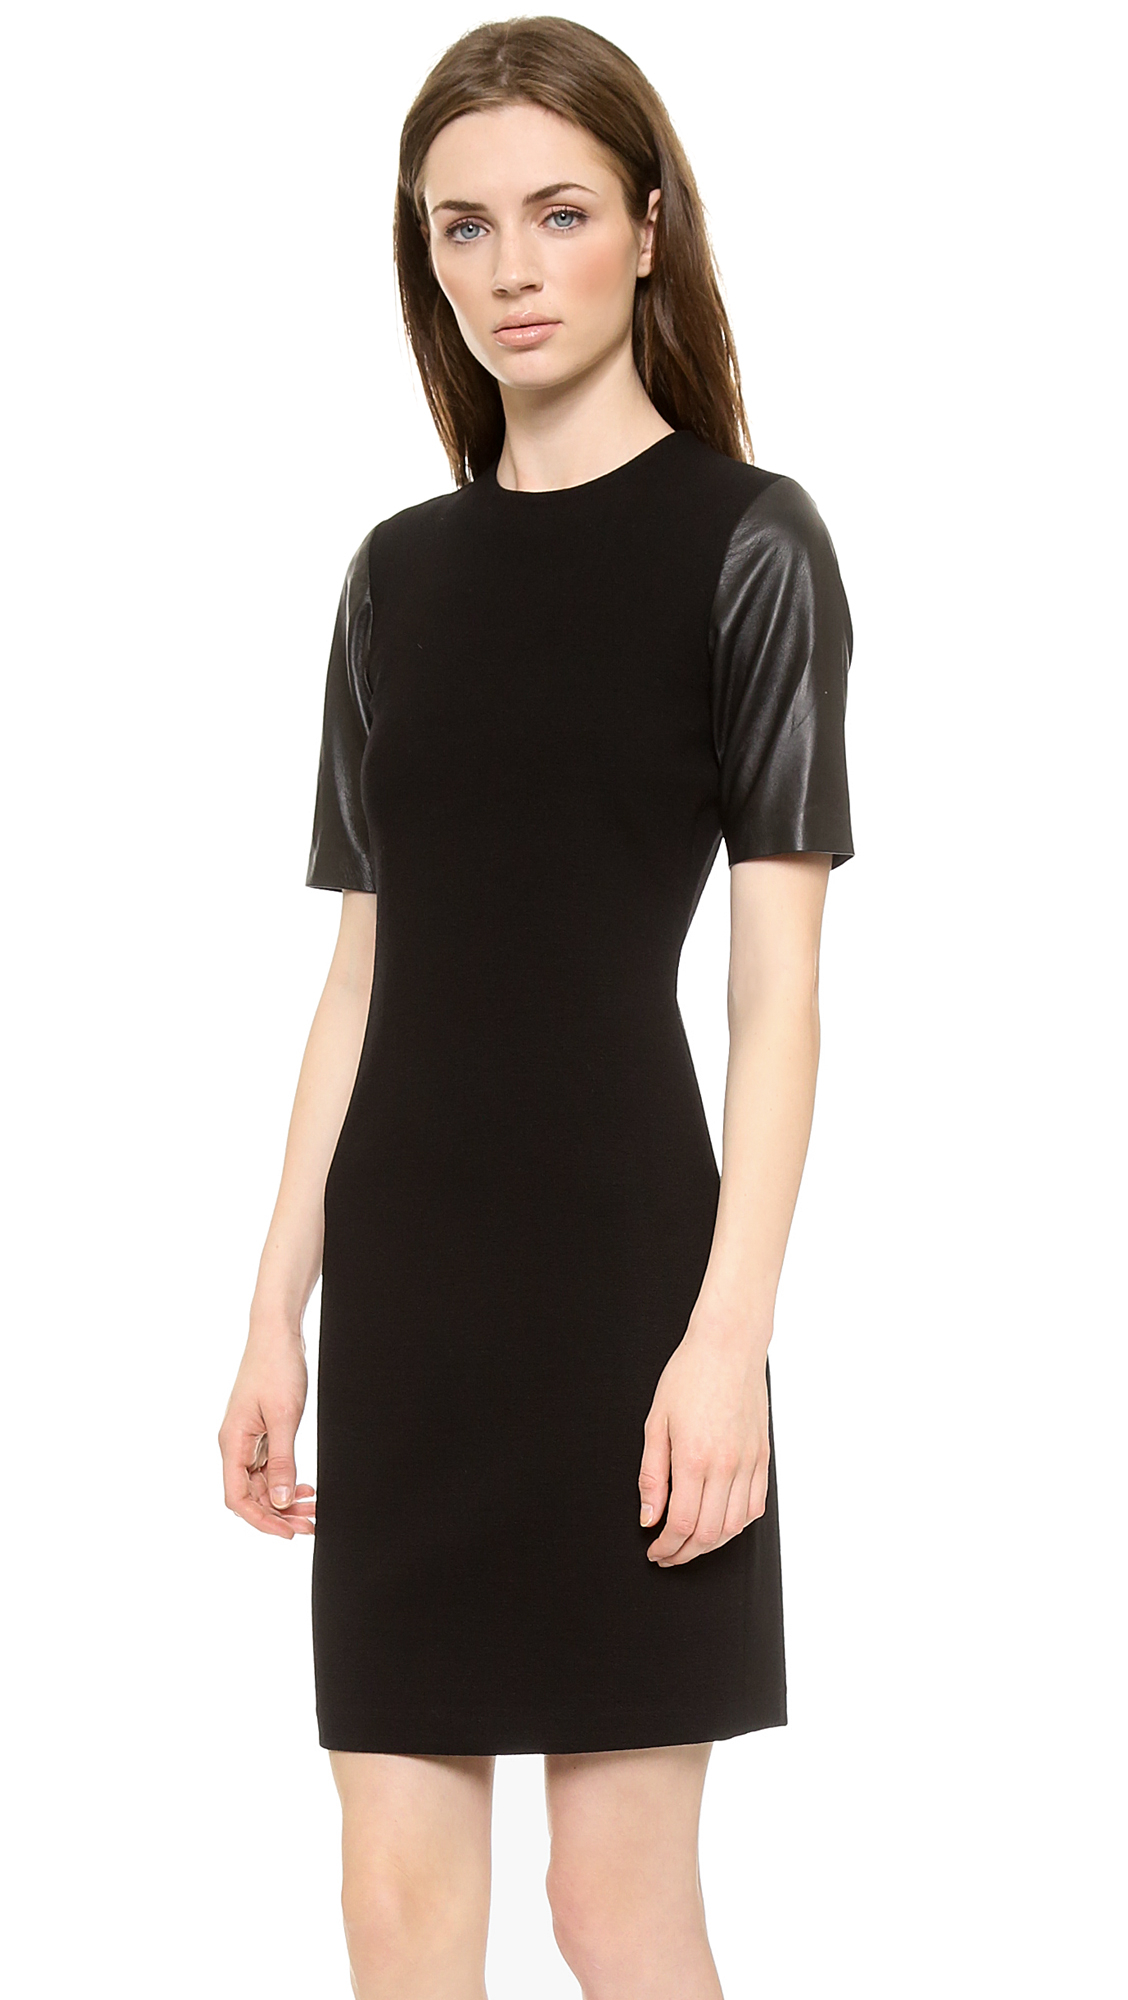 Vince Leather Sleeve Pencil Dress - Black in Black | Lyst